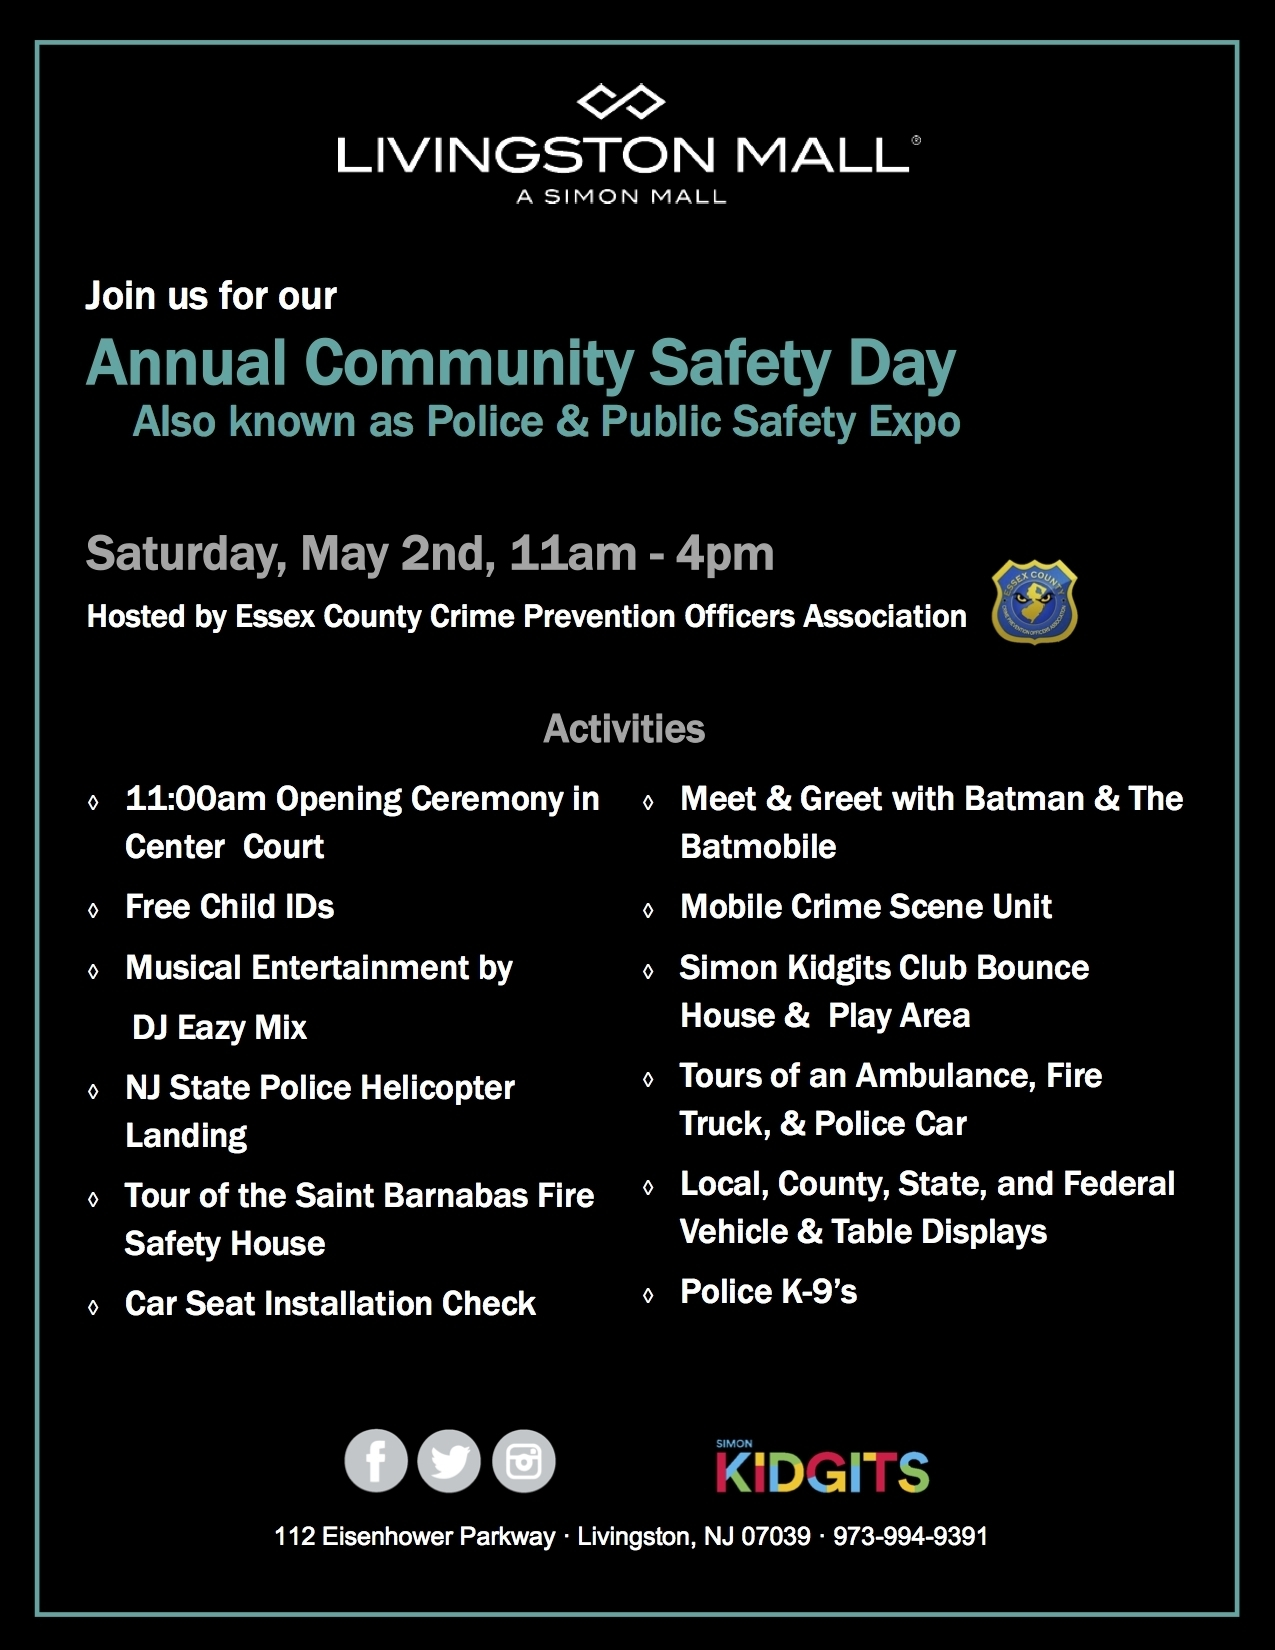 b09db6ef67f1a5e556ea_Community_Safety_Day.JPG